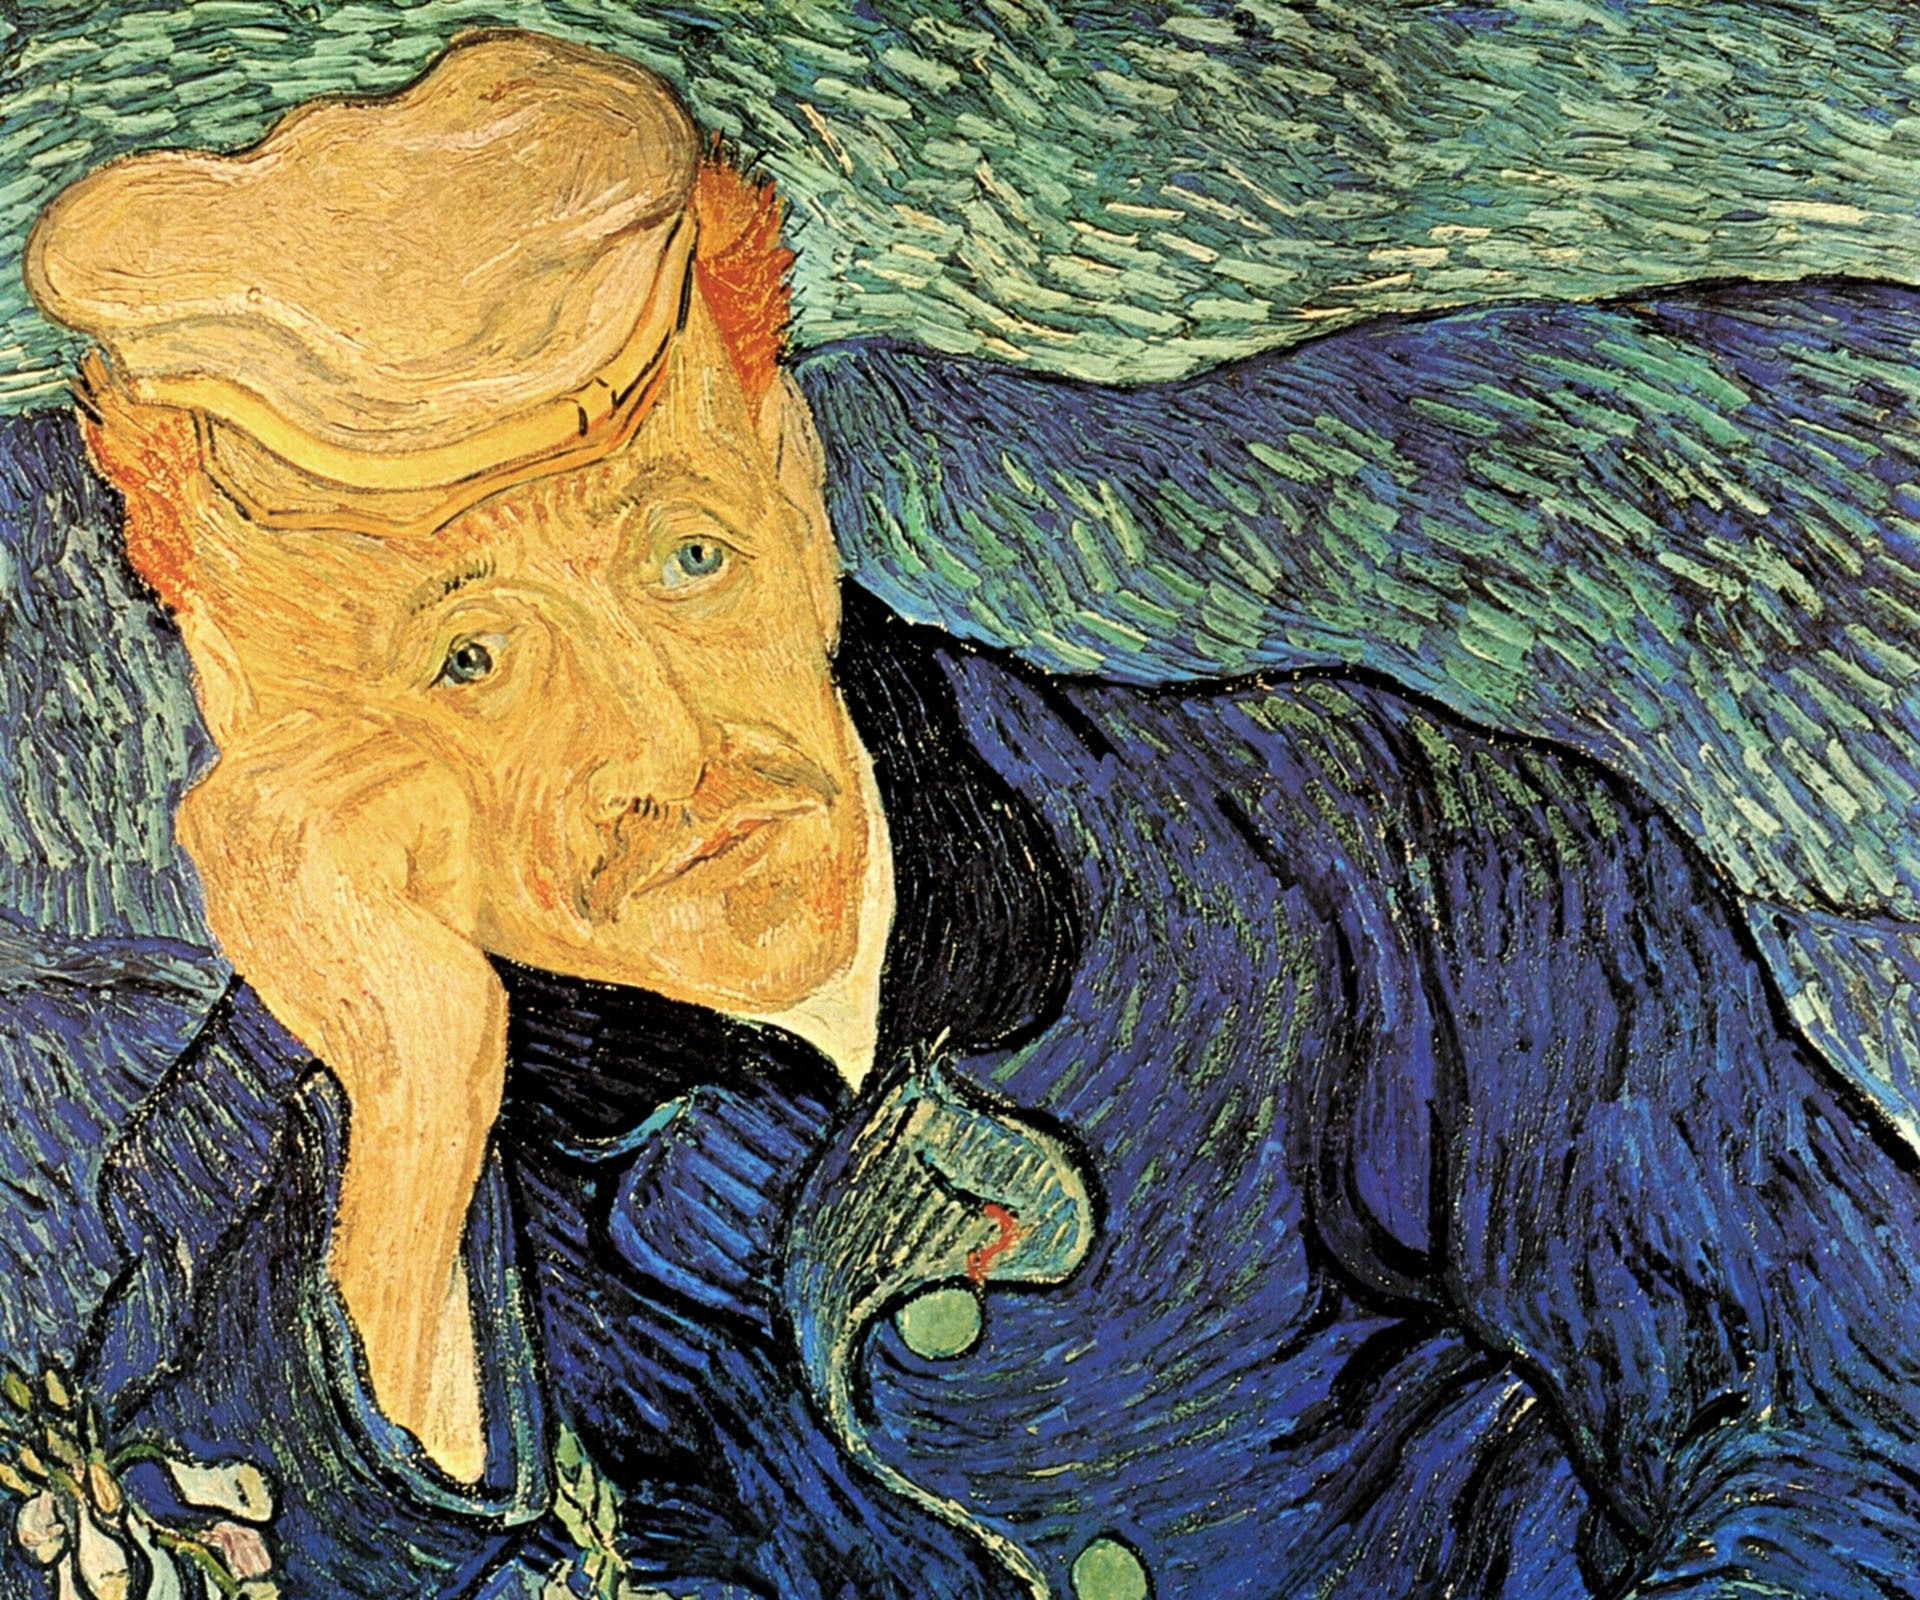 Apparently in person the melancholy speaks to viewers so clearly, a recent owner has said he intends to have this original van Gogh work cremated with him upon his death. What. A. Tool.